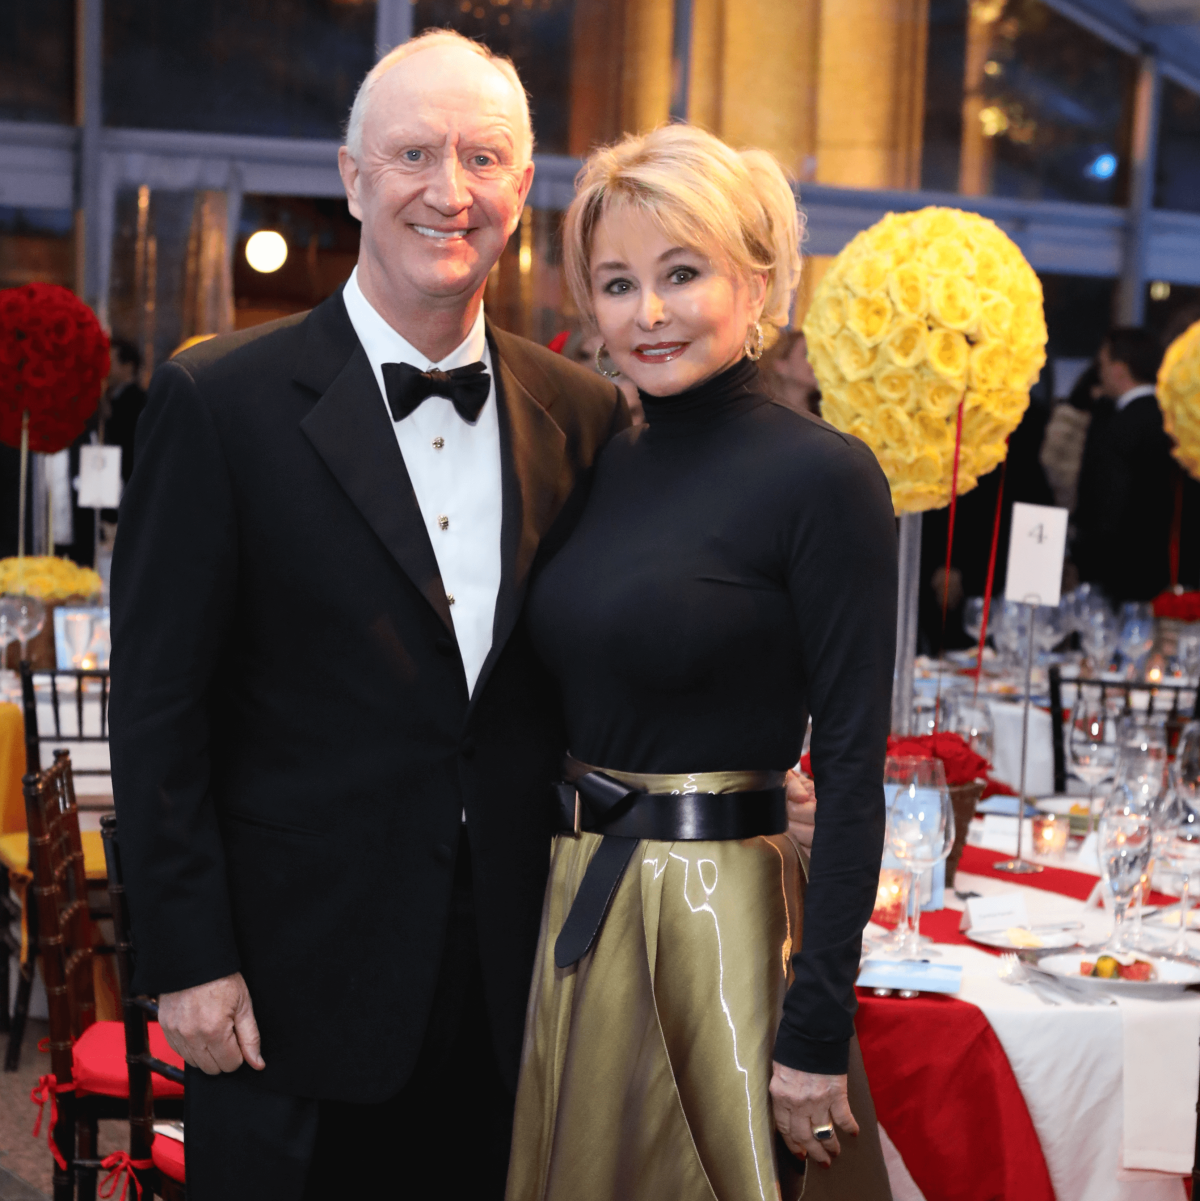 Frank and Michelle Hevrdejs at Houston Grand Opera opening night